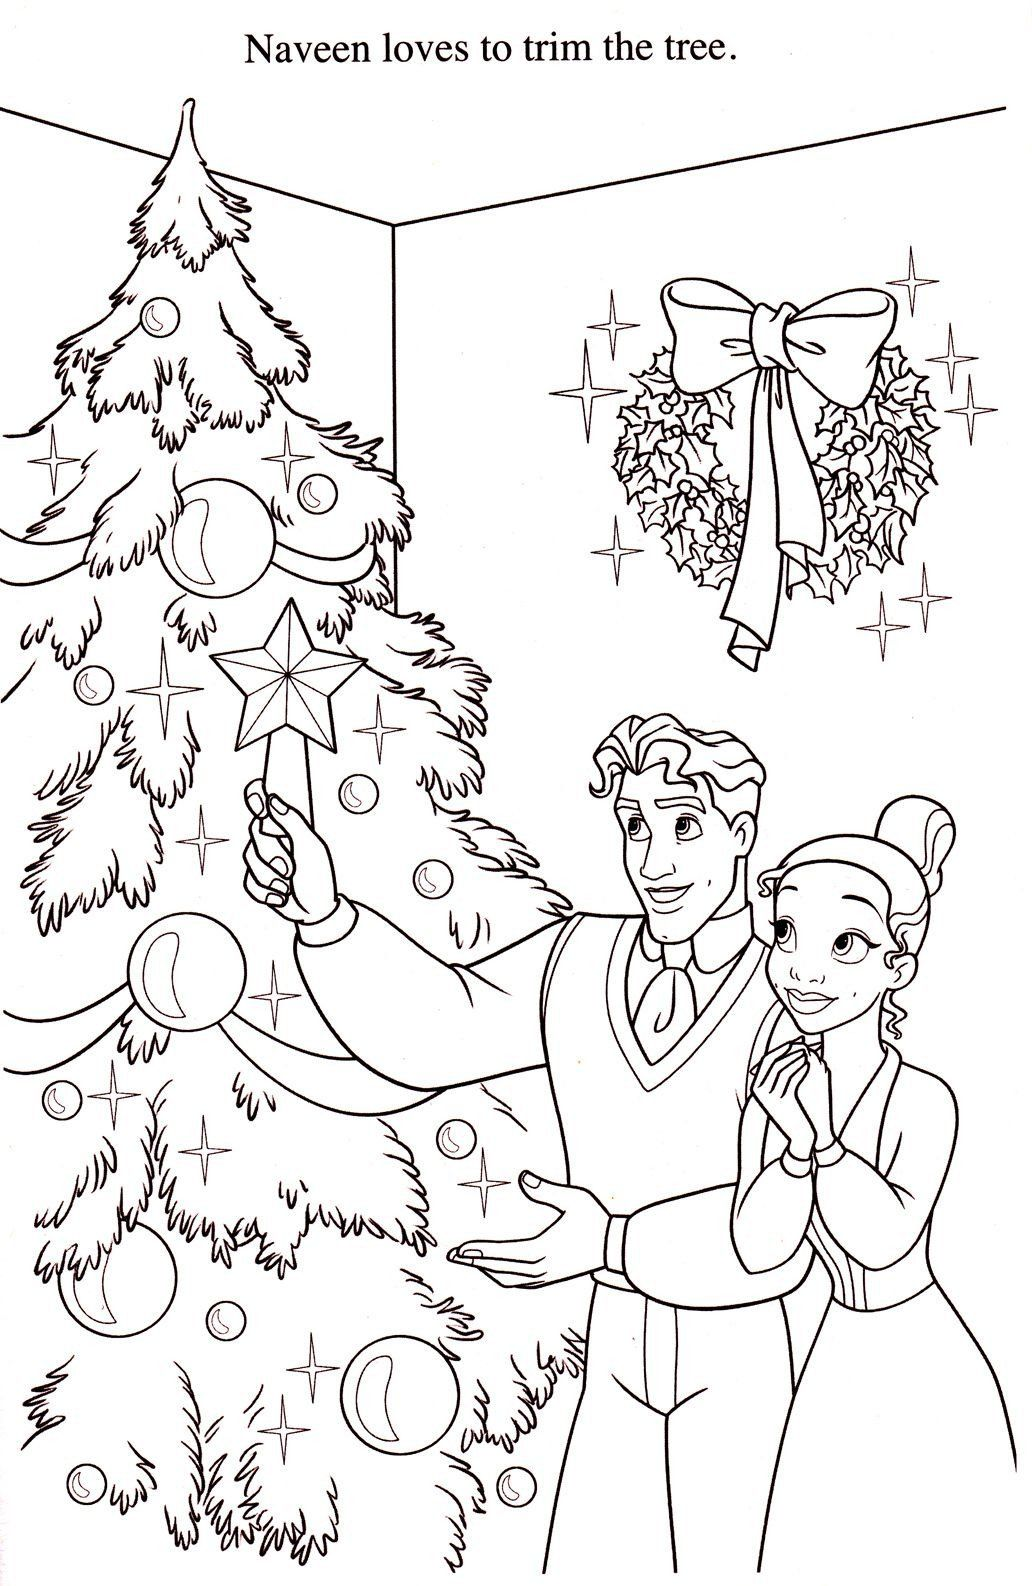 Disney Princess Christmas Coloring Pages Coloring Pages Disney Princess Christmas Colo Frog Coloring Pages Disney Coloring Pages Disney Princess Coloring Pages